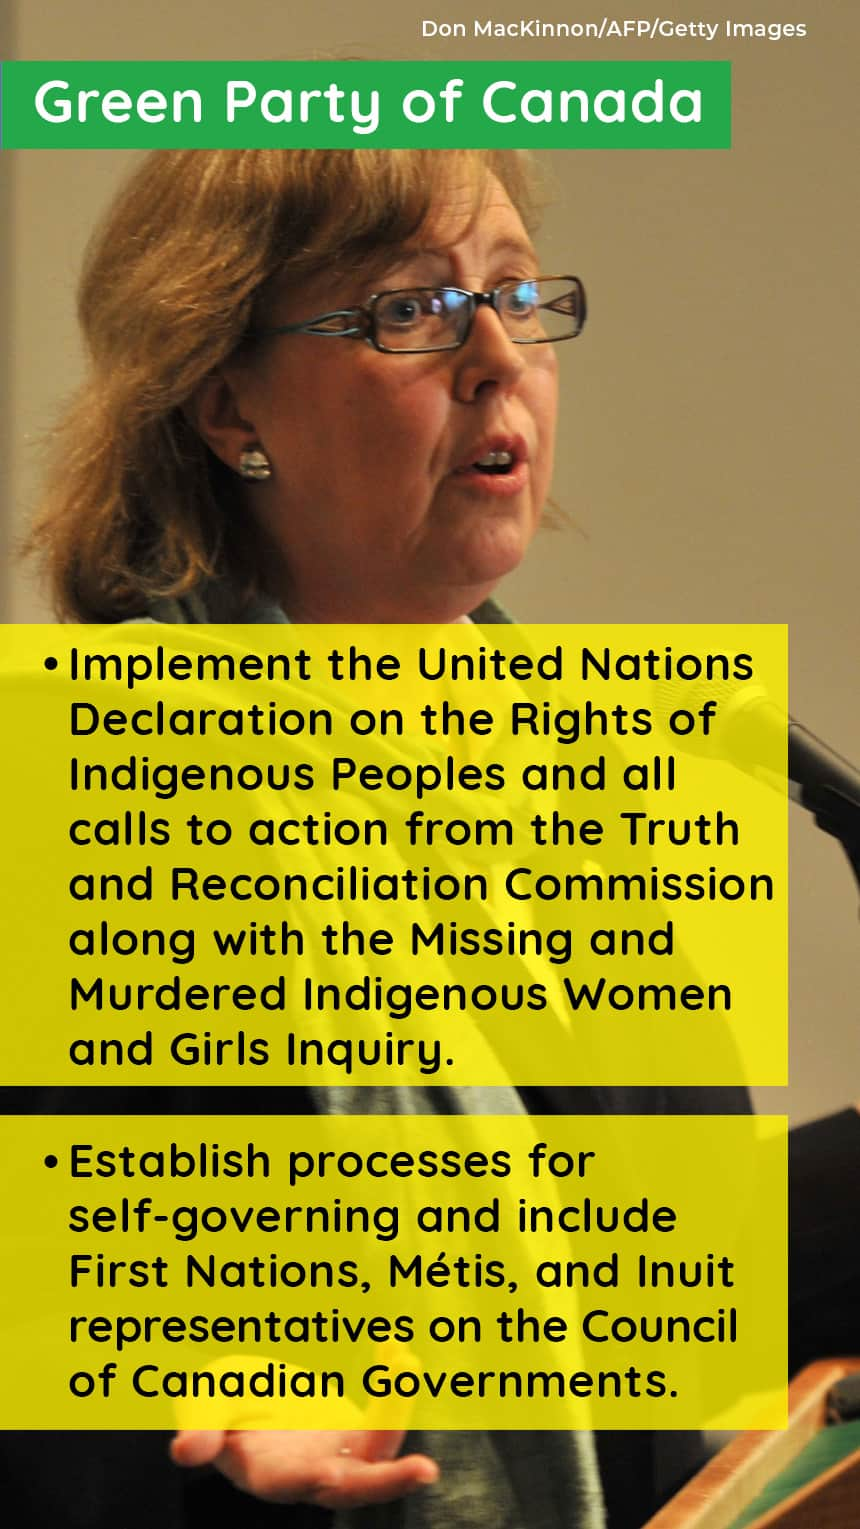 An image of Elizabeth May with text that says, GREEN PARTY OF CANADA Implement the United Nations Declaration on the Rights of Indigenous Peoples and all calls to action from the Truth and Reconciliation Commission along with the Missing and Murdered Indigenous Women and Girls Inquiry, Establish processes for self-governing and include First Nations, Métis, and Inuit representatives on the Council of Canadian Governments.